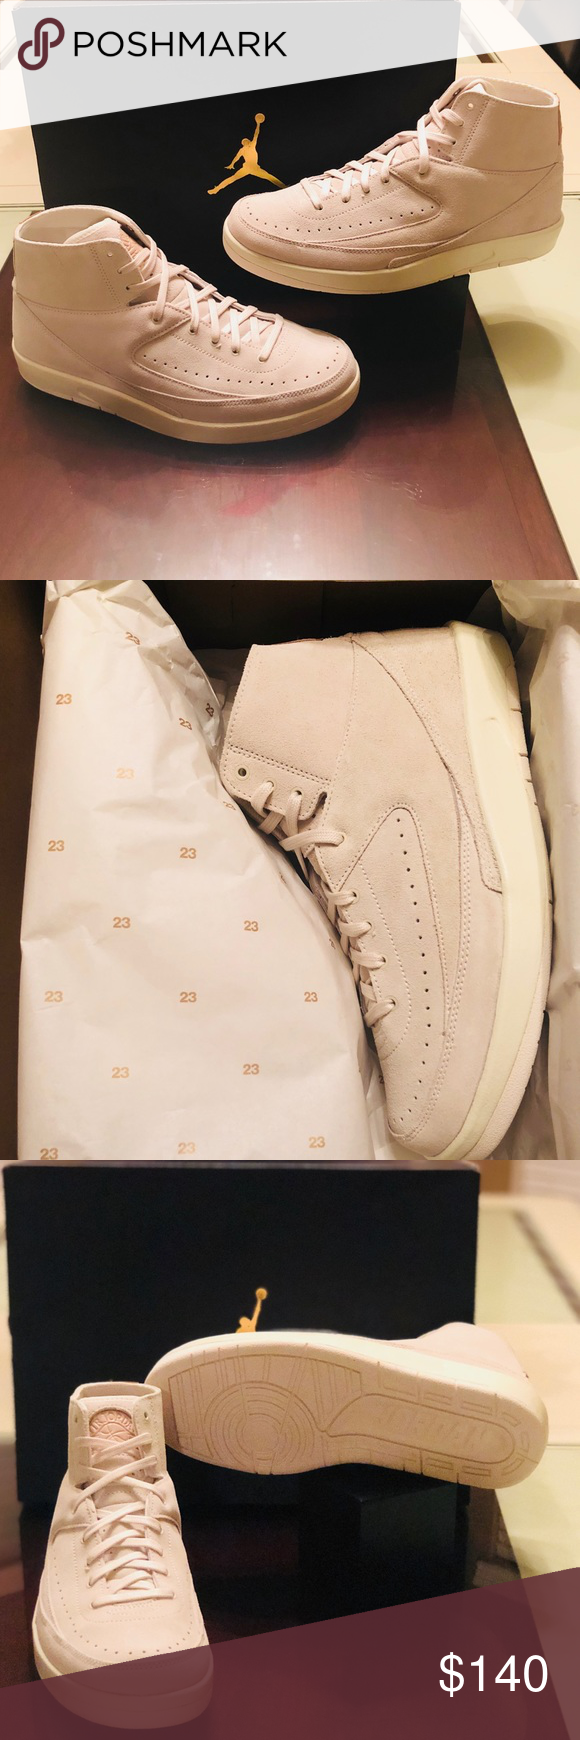 best service 752ca 30c6d 💫Make an offer💫 🆕Air Jordan 2 Retro Decon The iconic Air Jordan 2  silhouette, deconstructed for a minimalist look full of classic Jordan  style.